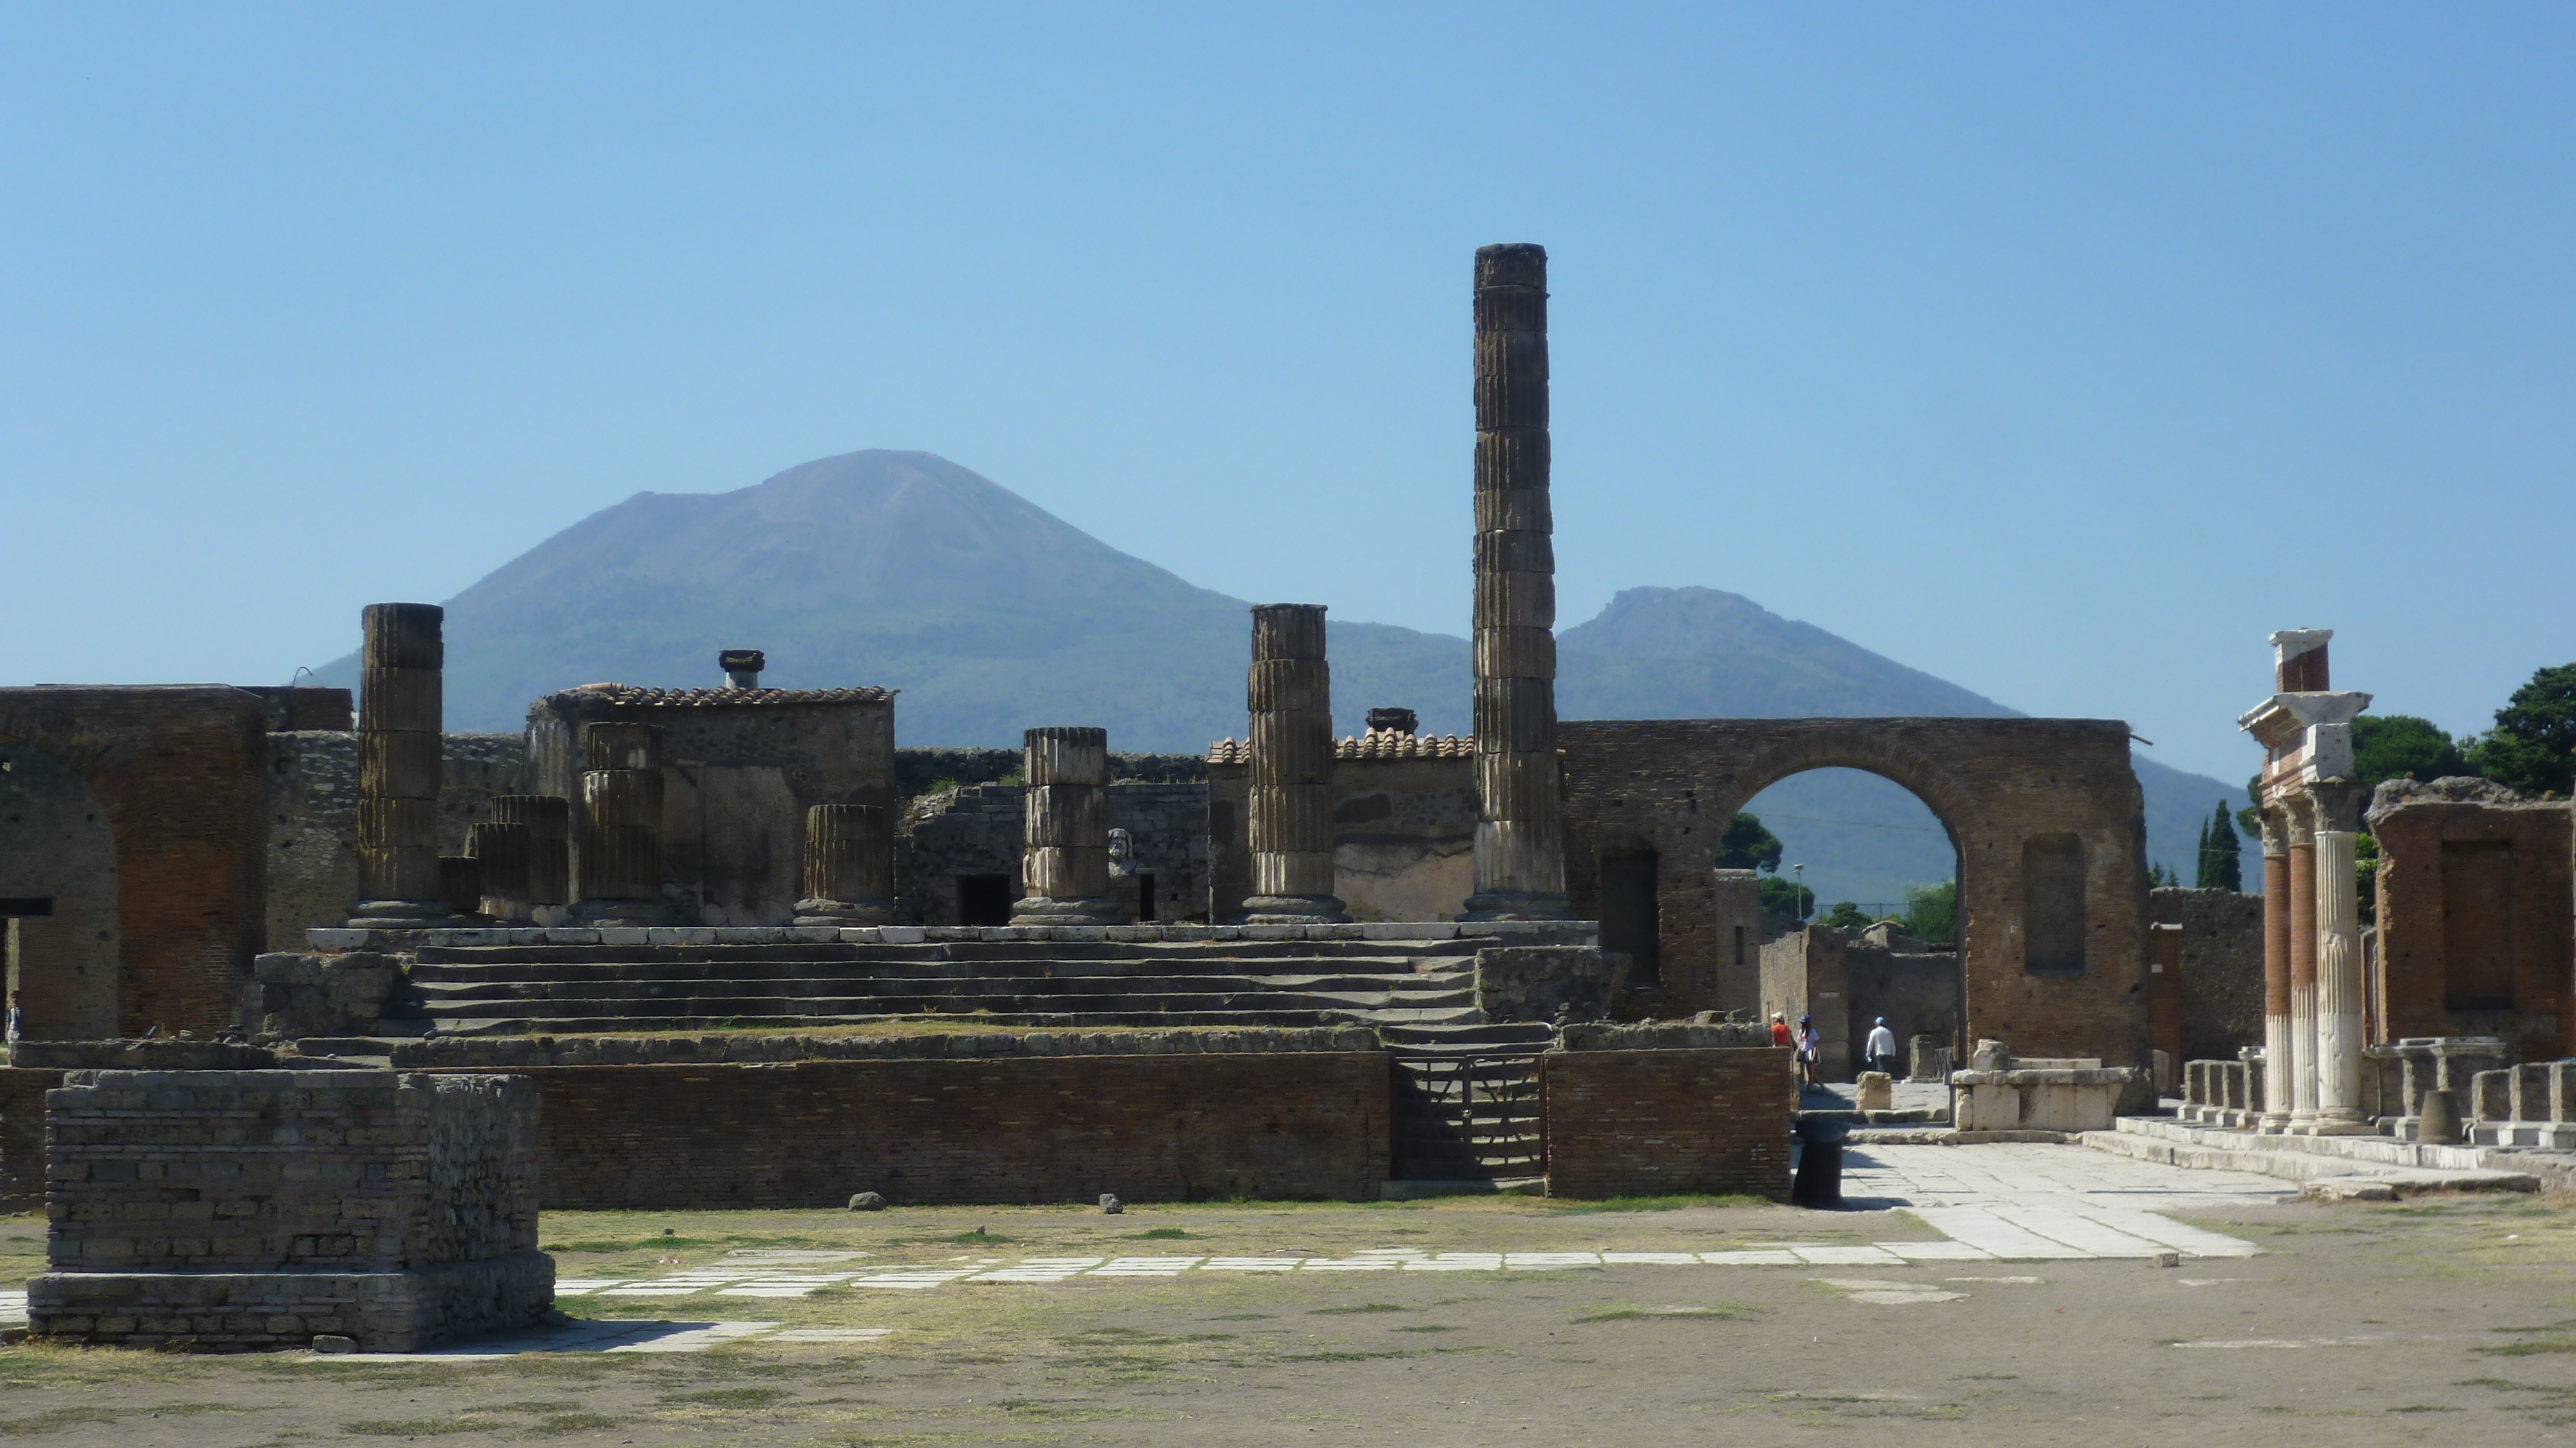 View from the Forum looking towards the Temple of Jupiter with Vesuvius in the background. Photo (c) 2012 Kim Traynor